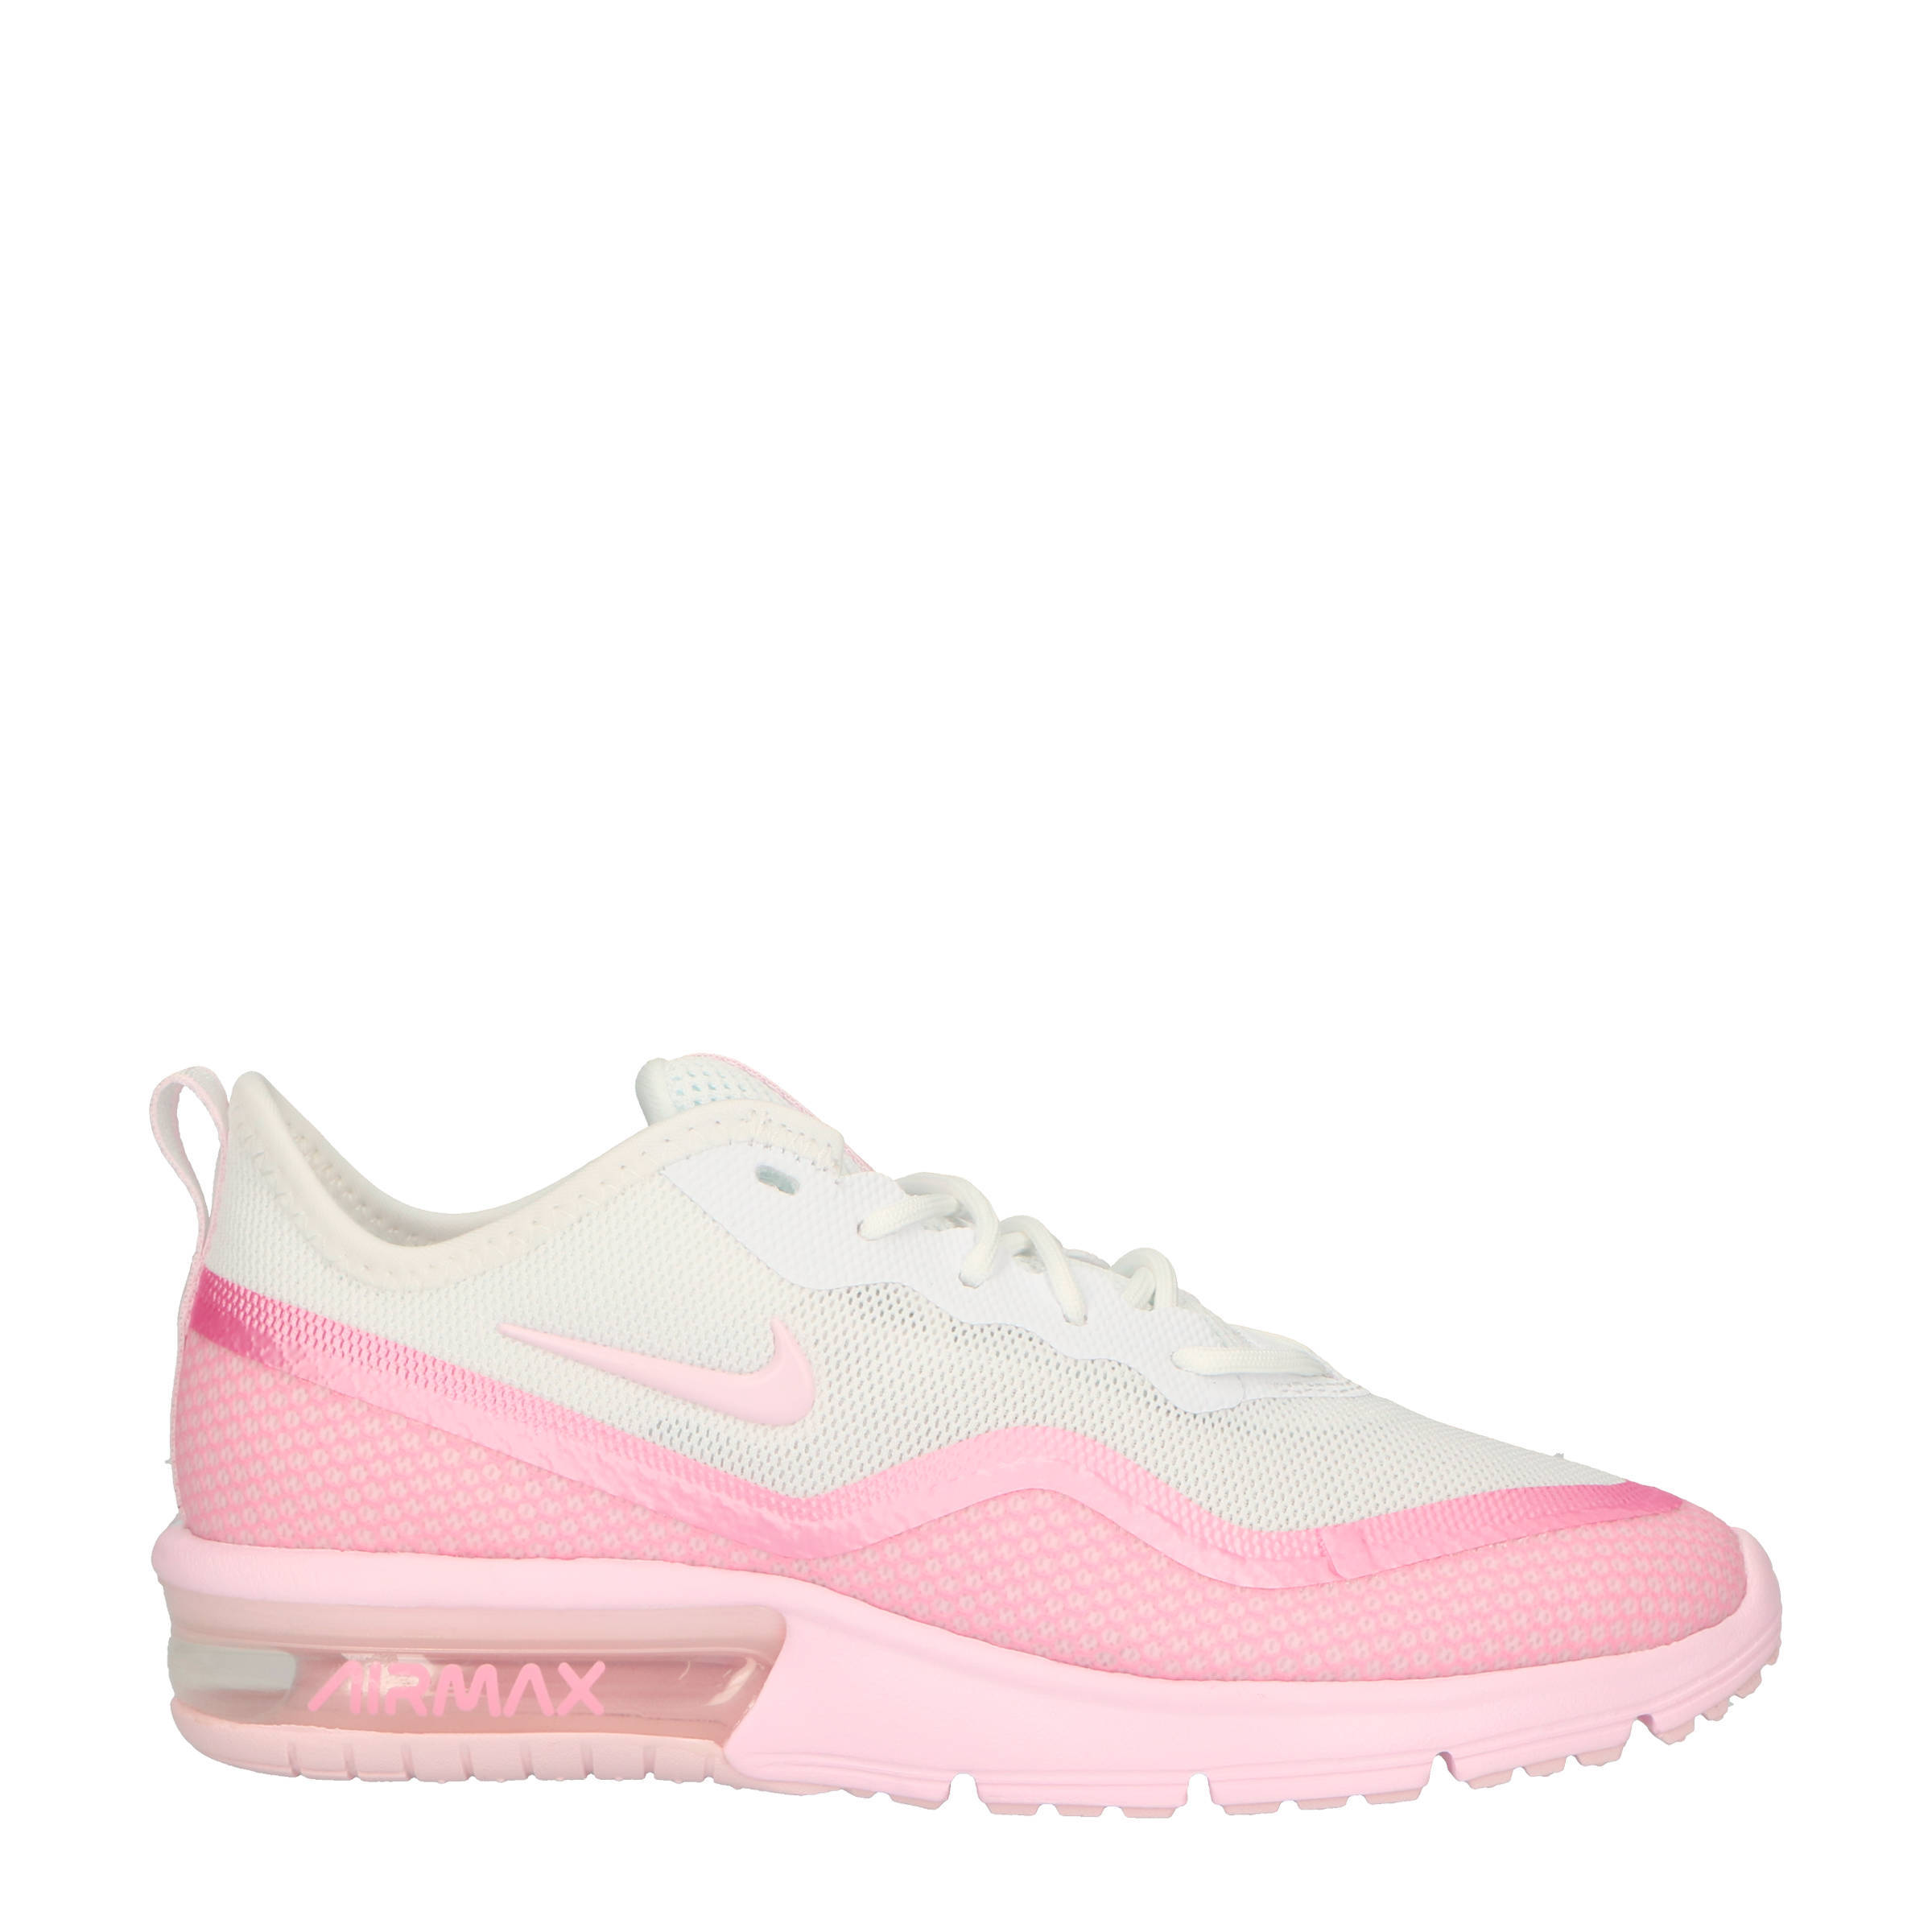 2e364c2fdd0 Nike Air Max Sequent 4.5 sneakers wit/roze | wehkamp